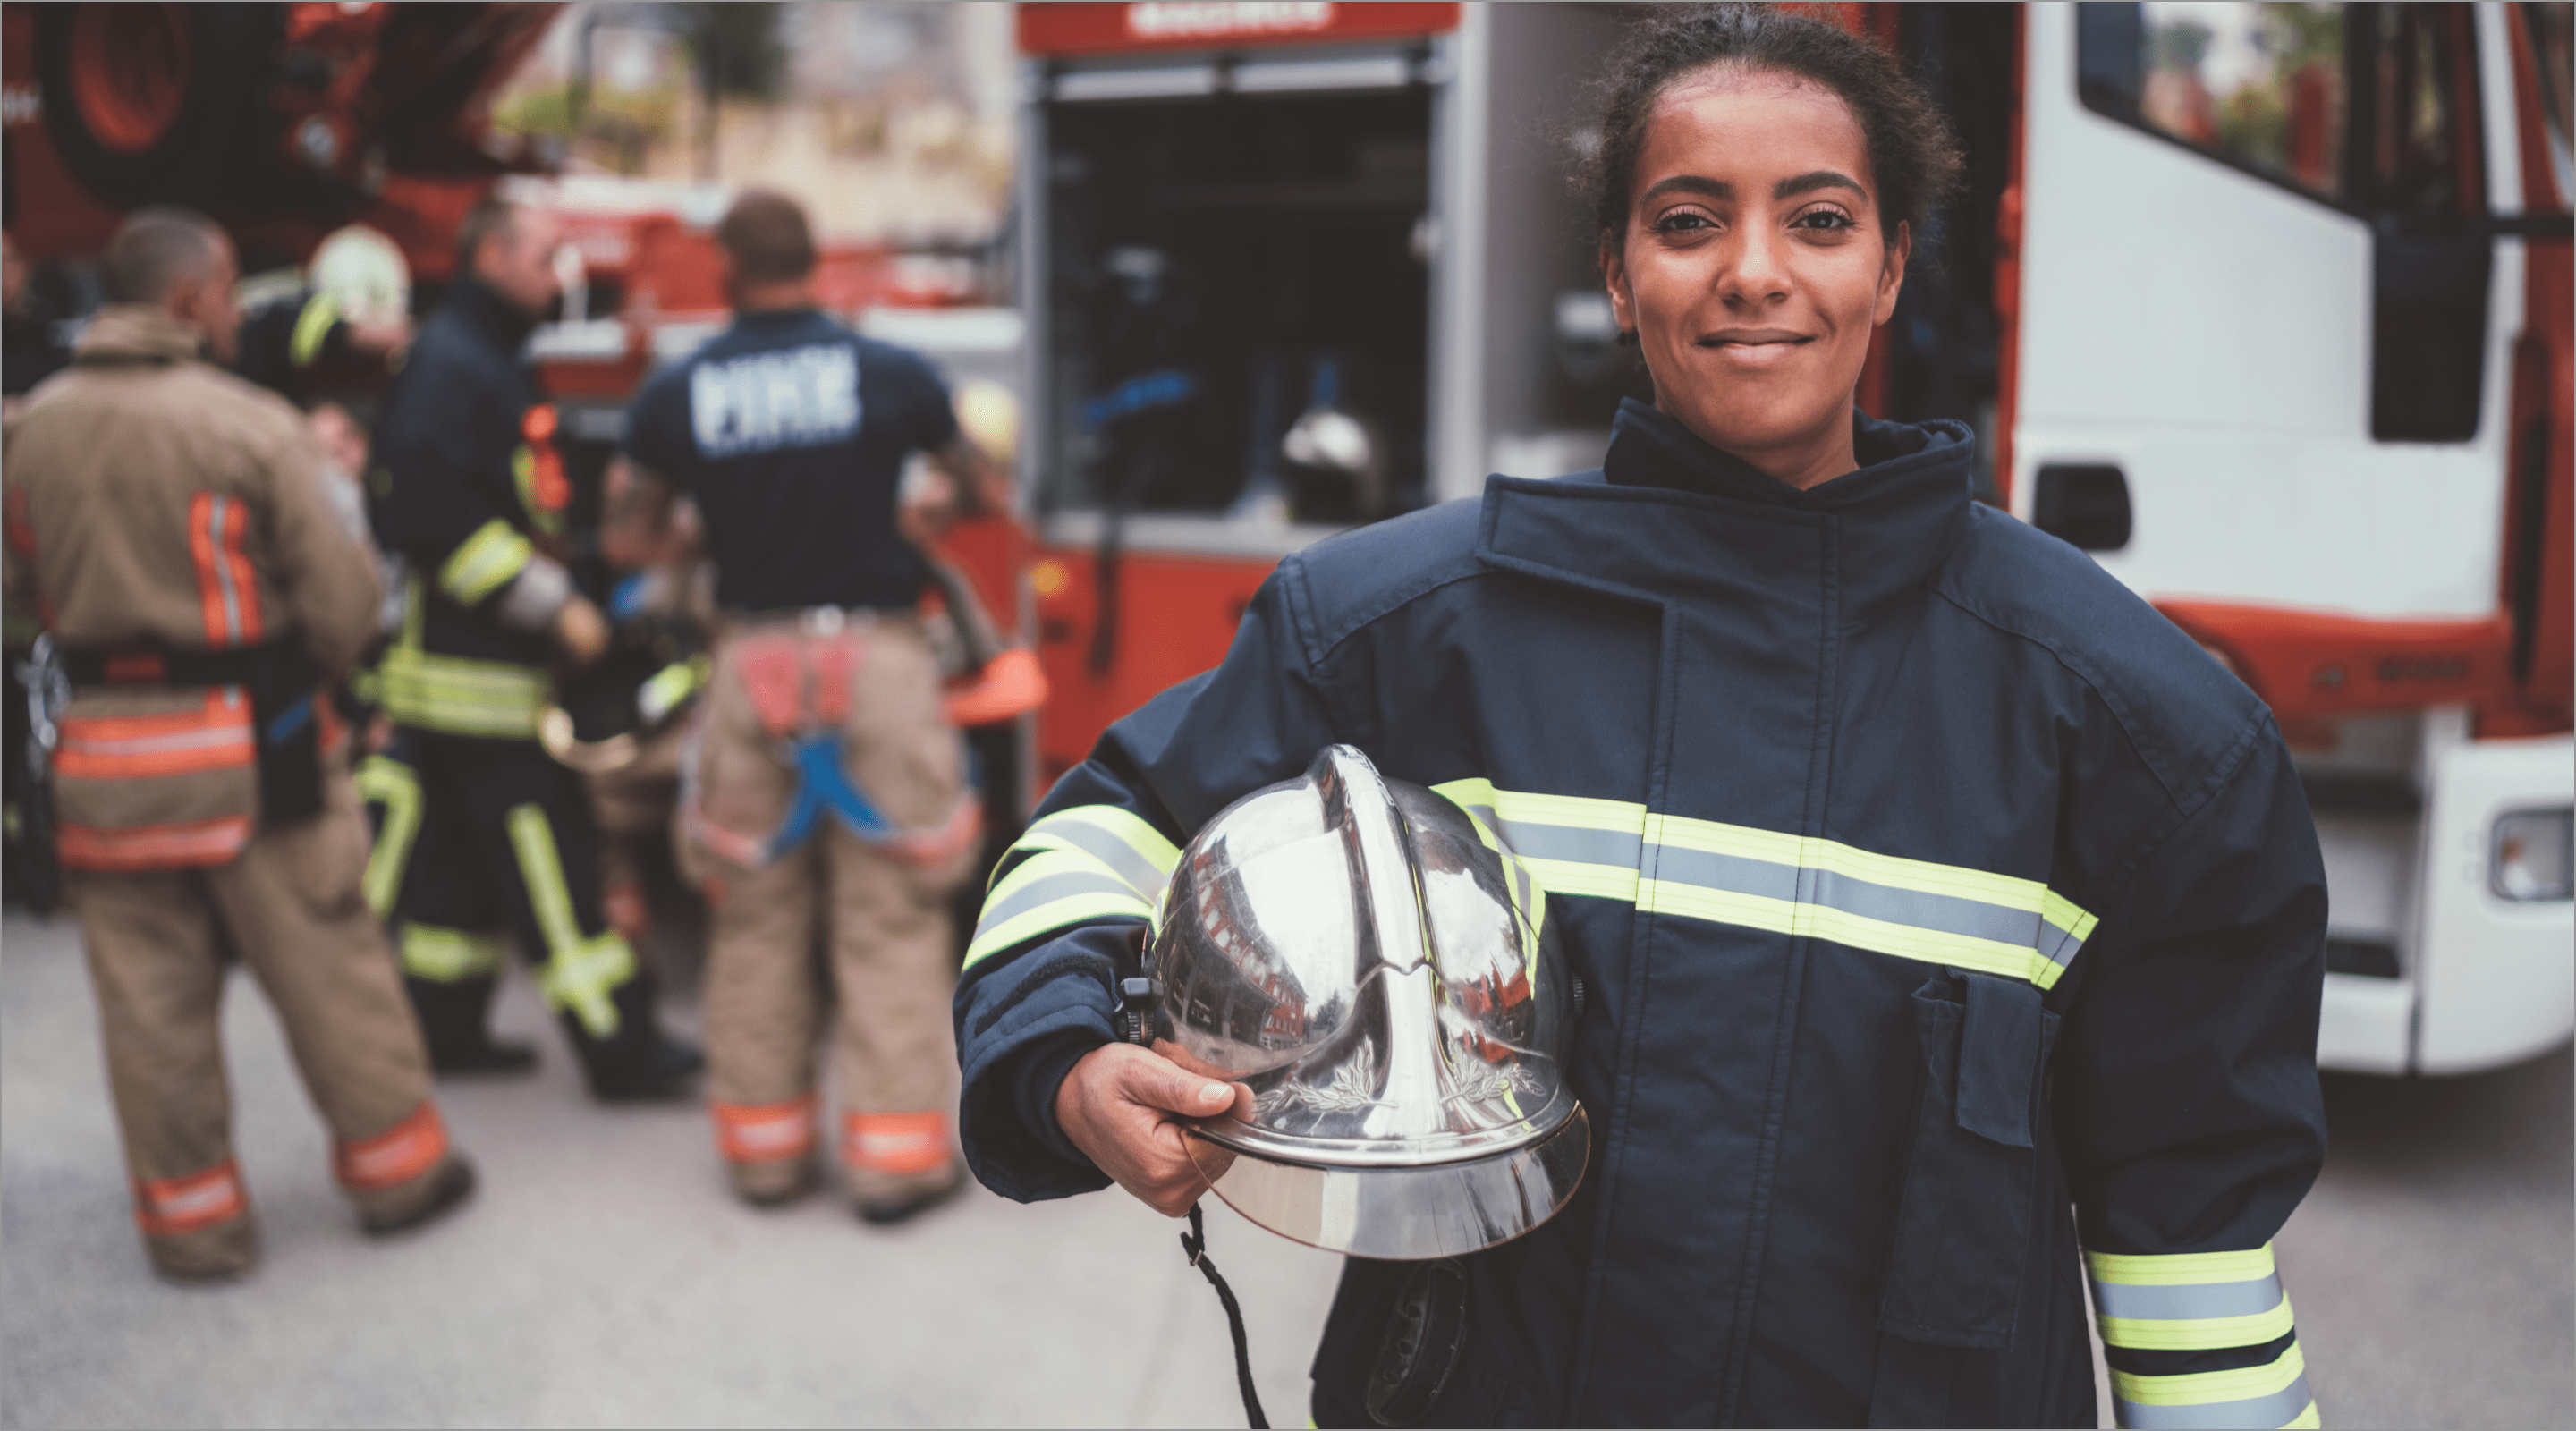 firefighter smiling into the camera